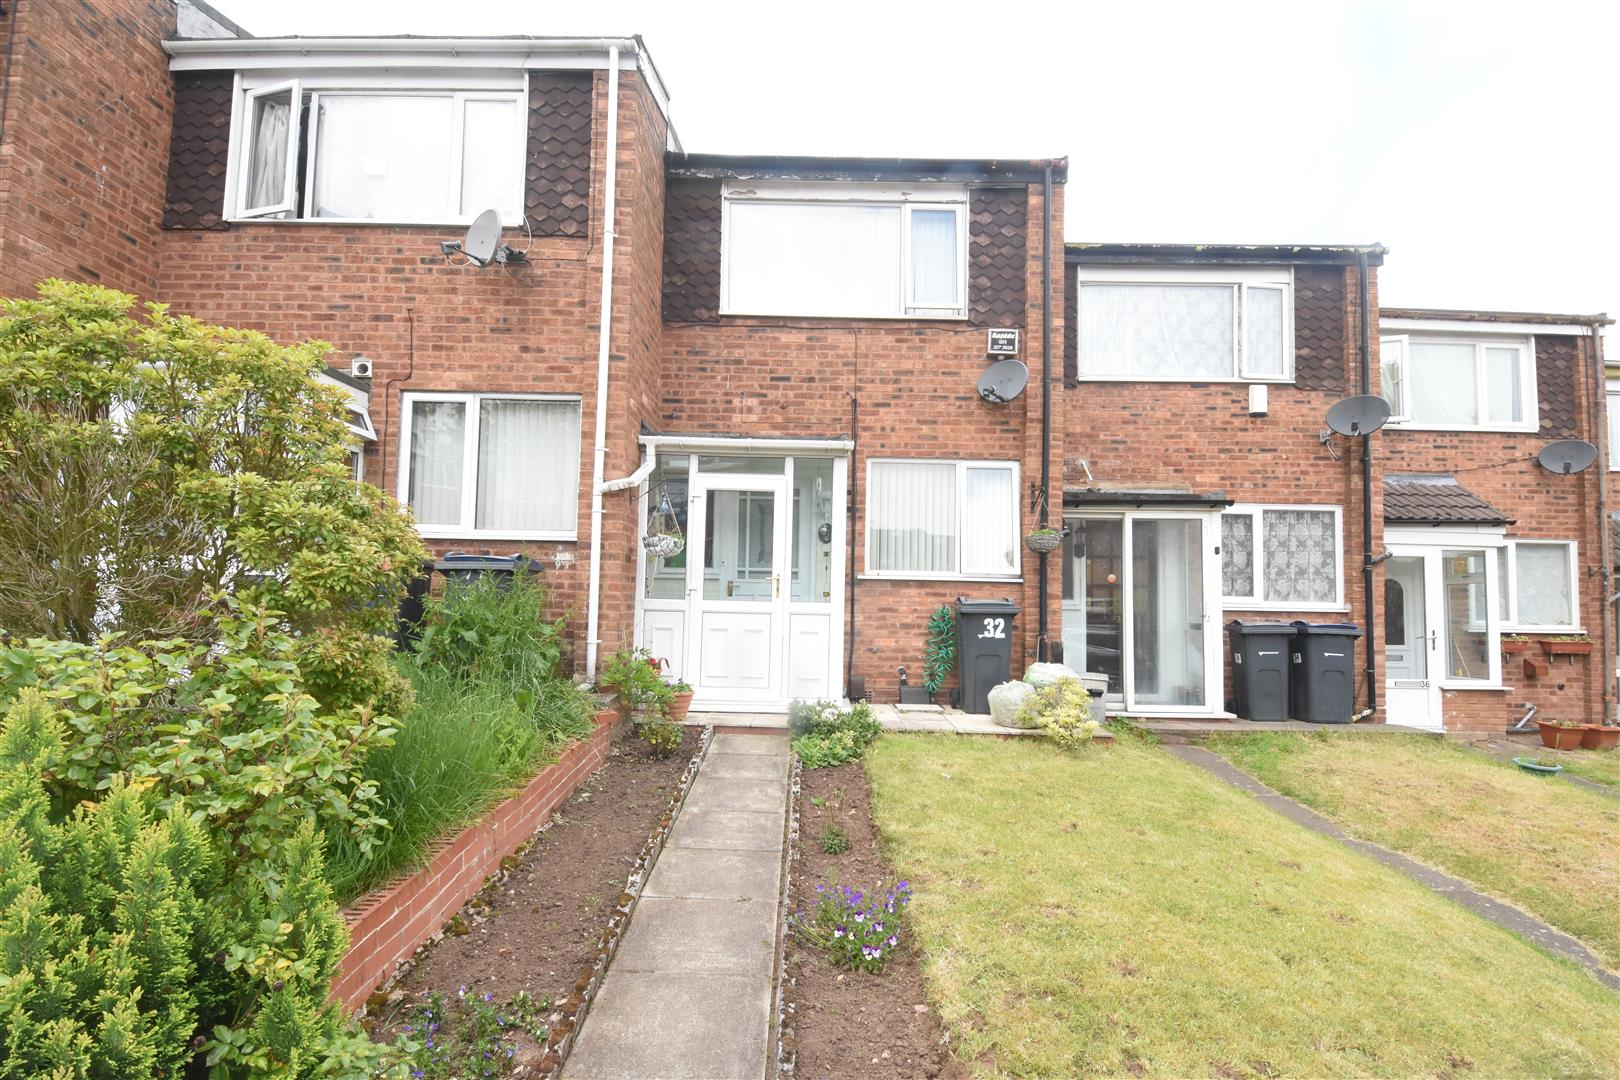 2 bed house for sale in Oxford Close, Ward End, Birmingham - Property Image 1